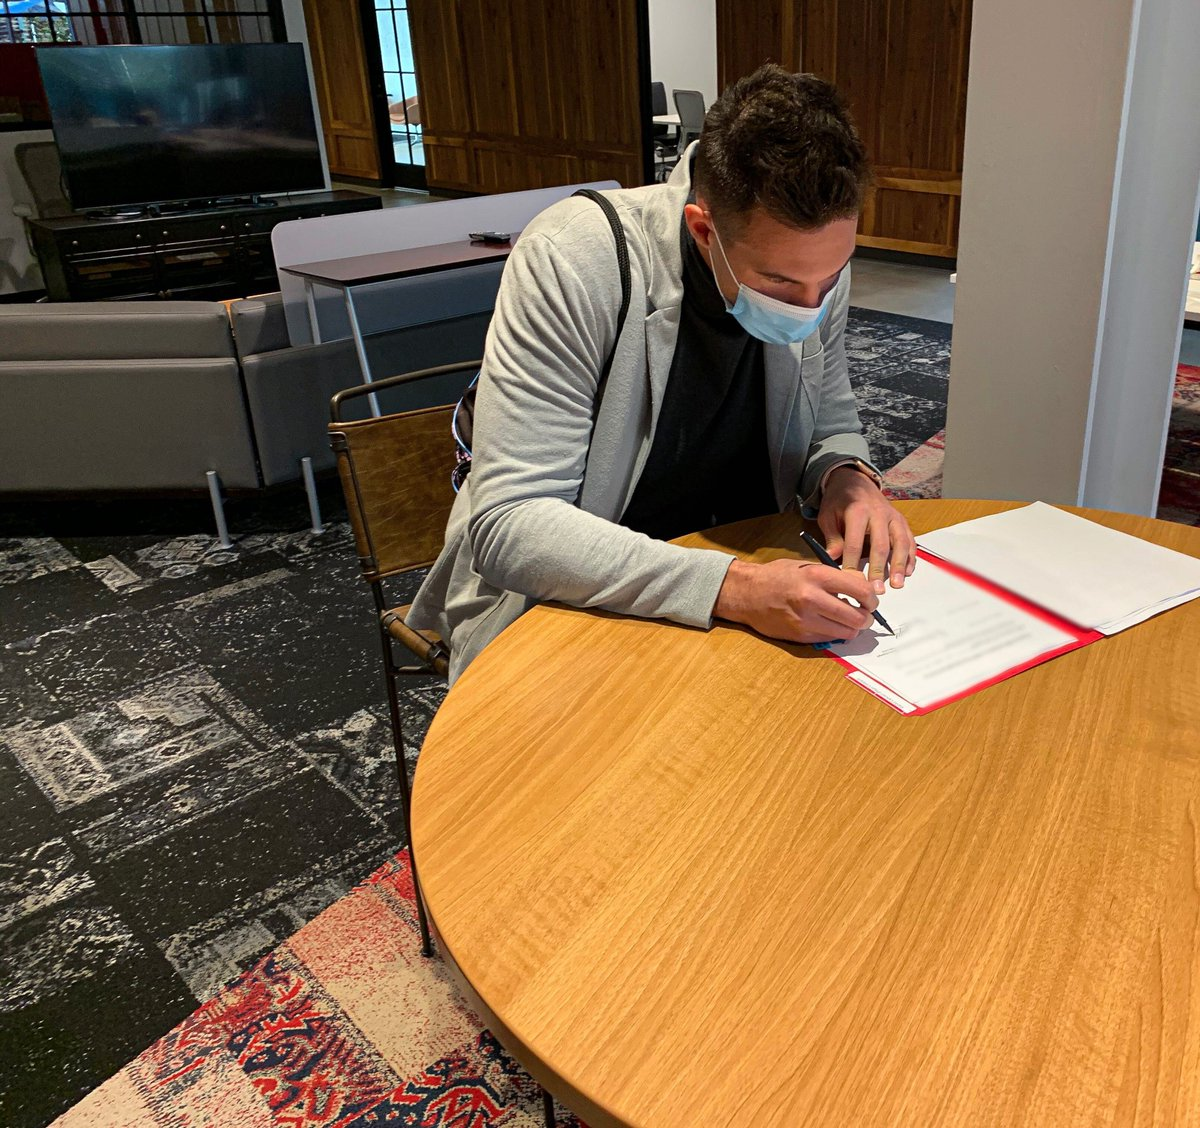 Officially ready for work ✔️🖋️   #TrueToAtlanta | @gallinari8888